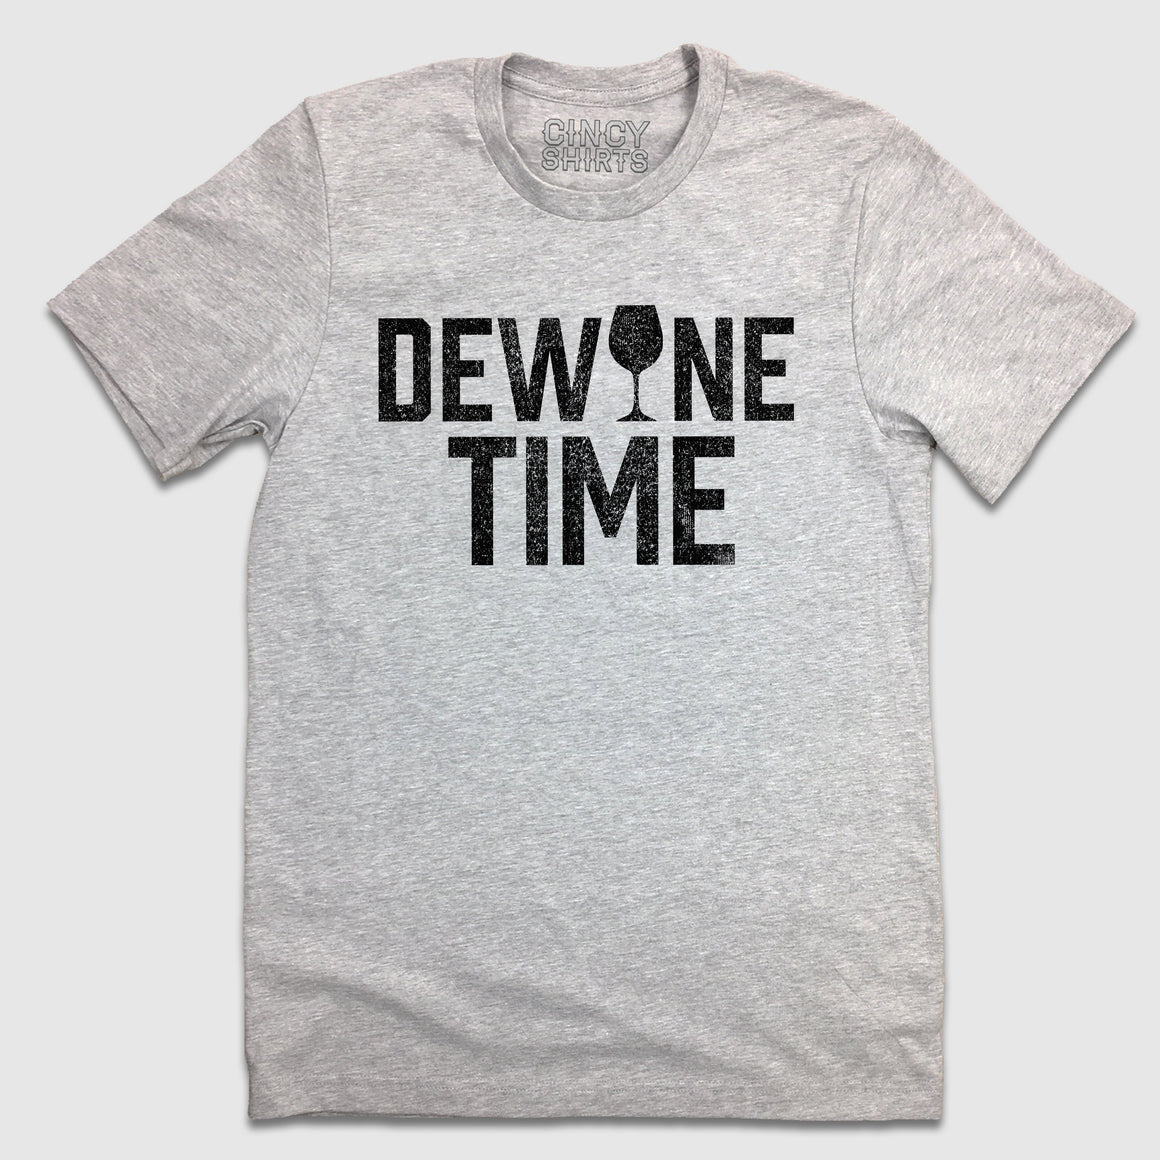 DeWine Time - Cincy Shirts